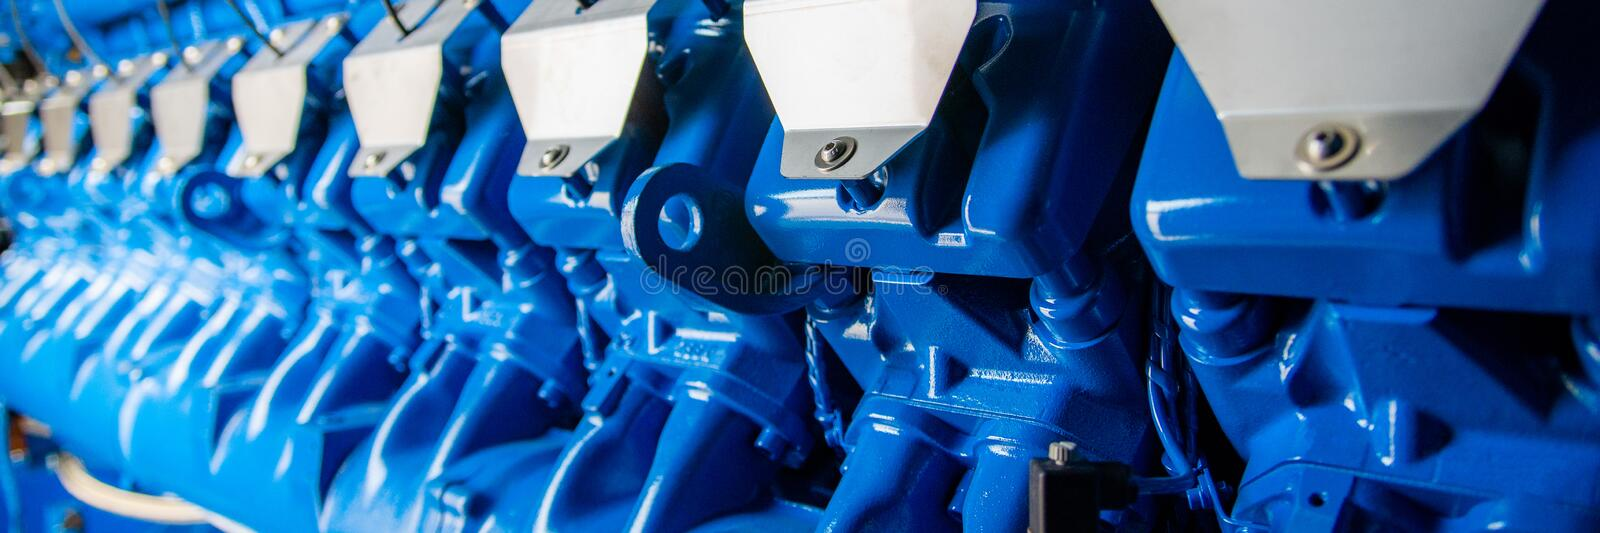 Engine of CHP unit. Diesel and gas industrial electric generator. Alternative energy for industry, electricity, cogeneration, trigeneration, equipment, fuel stock image